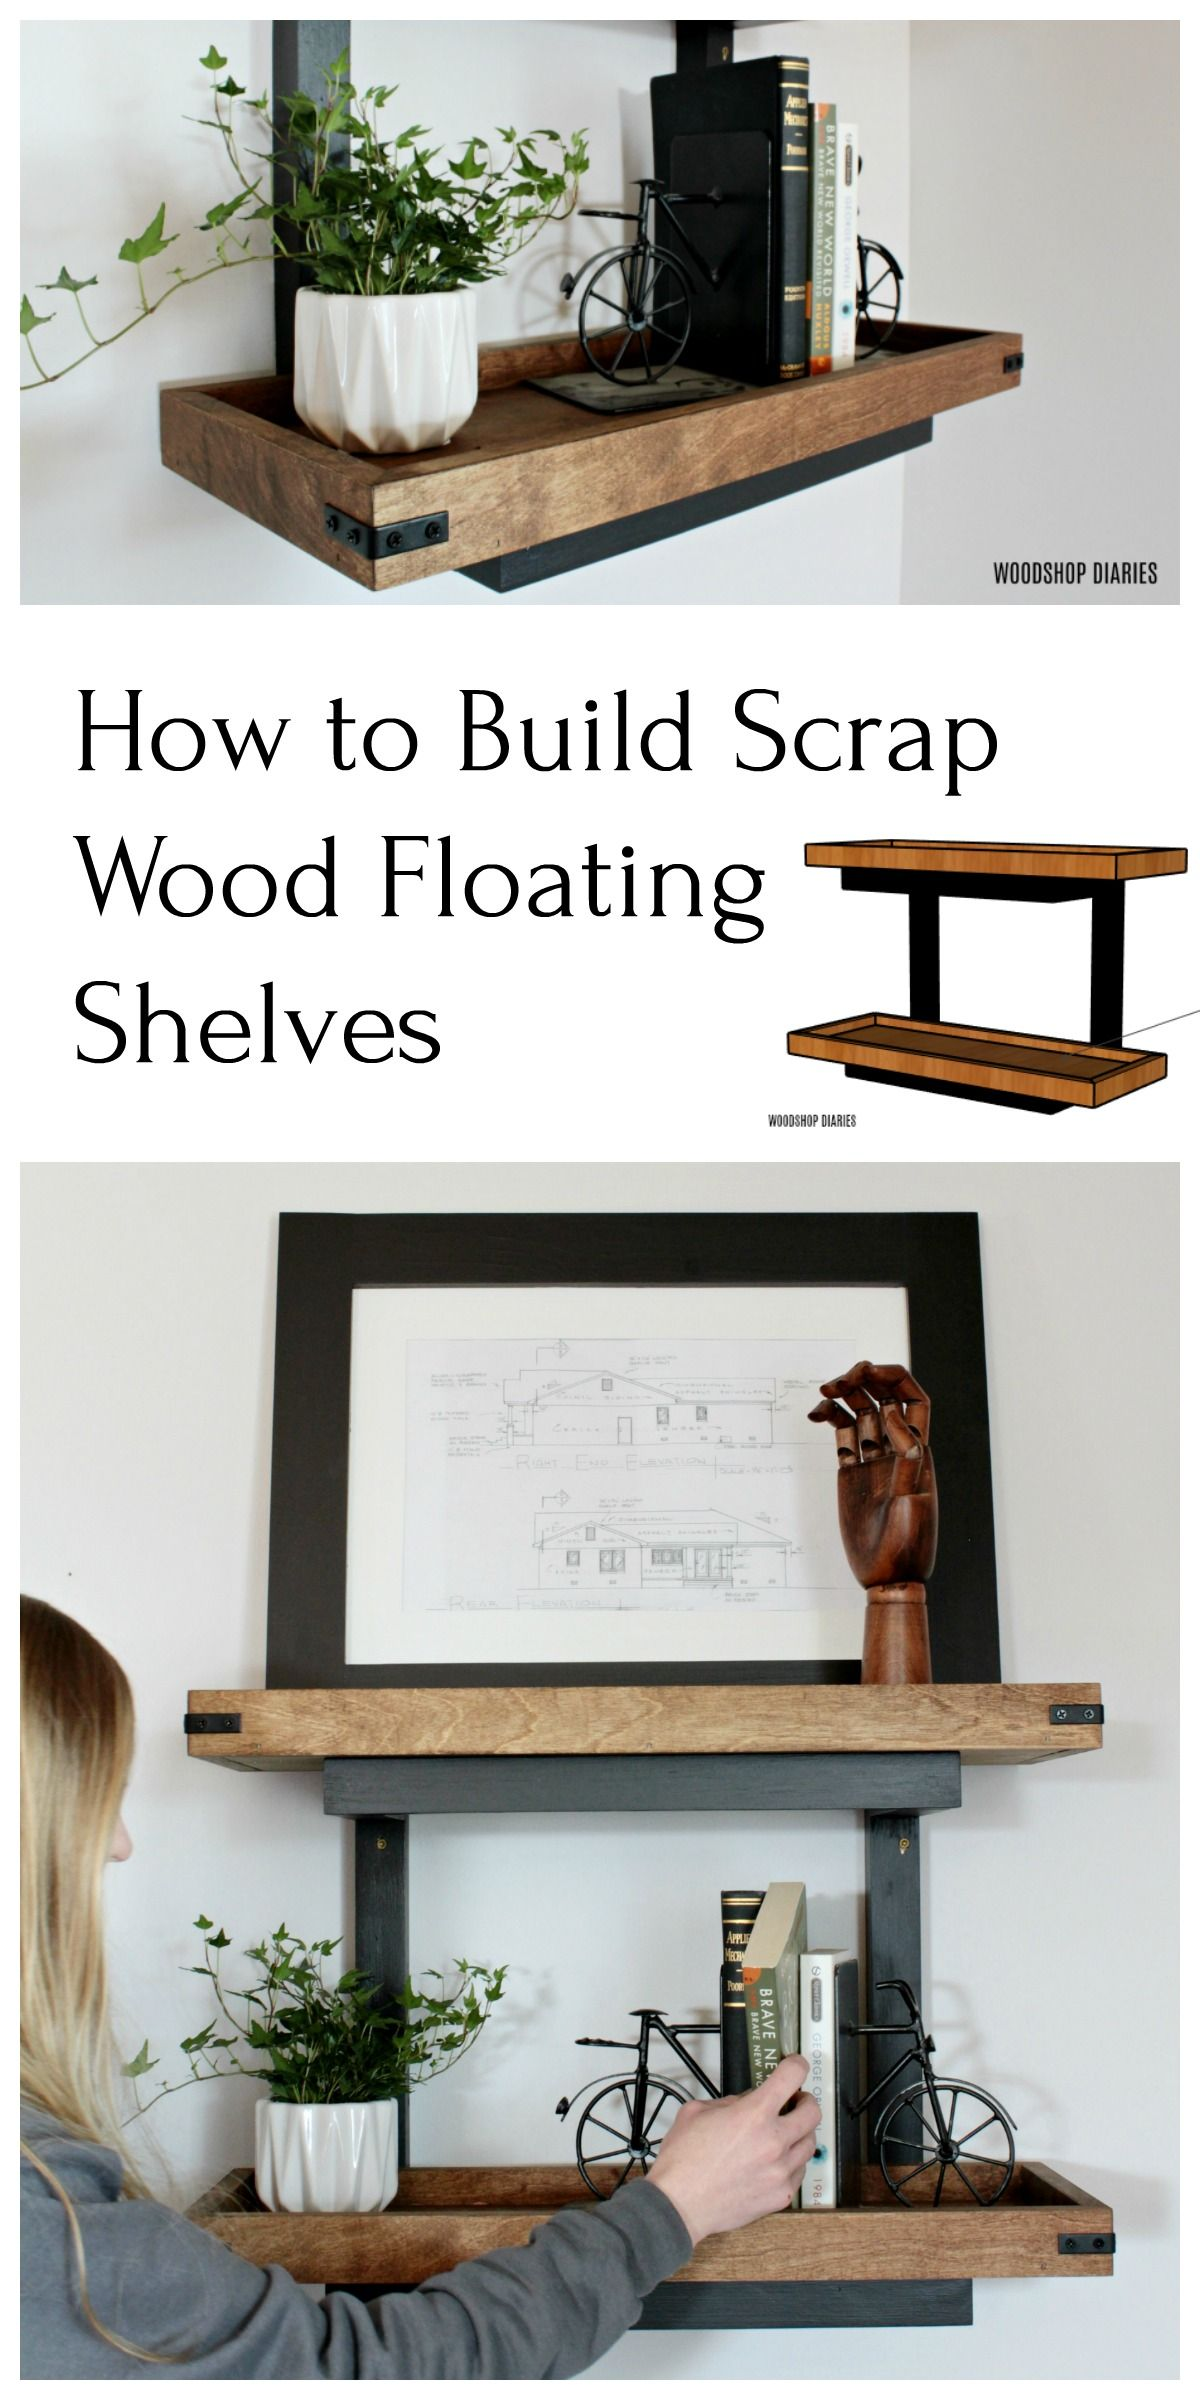 How To Build Floating Diy Wall Shelves Without Brackets From Scraps In 2020 Floating Wall Shelves Shelf Without Brackets Wall Shelves